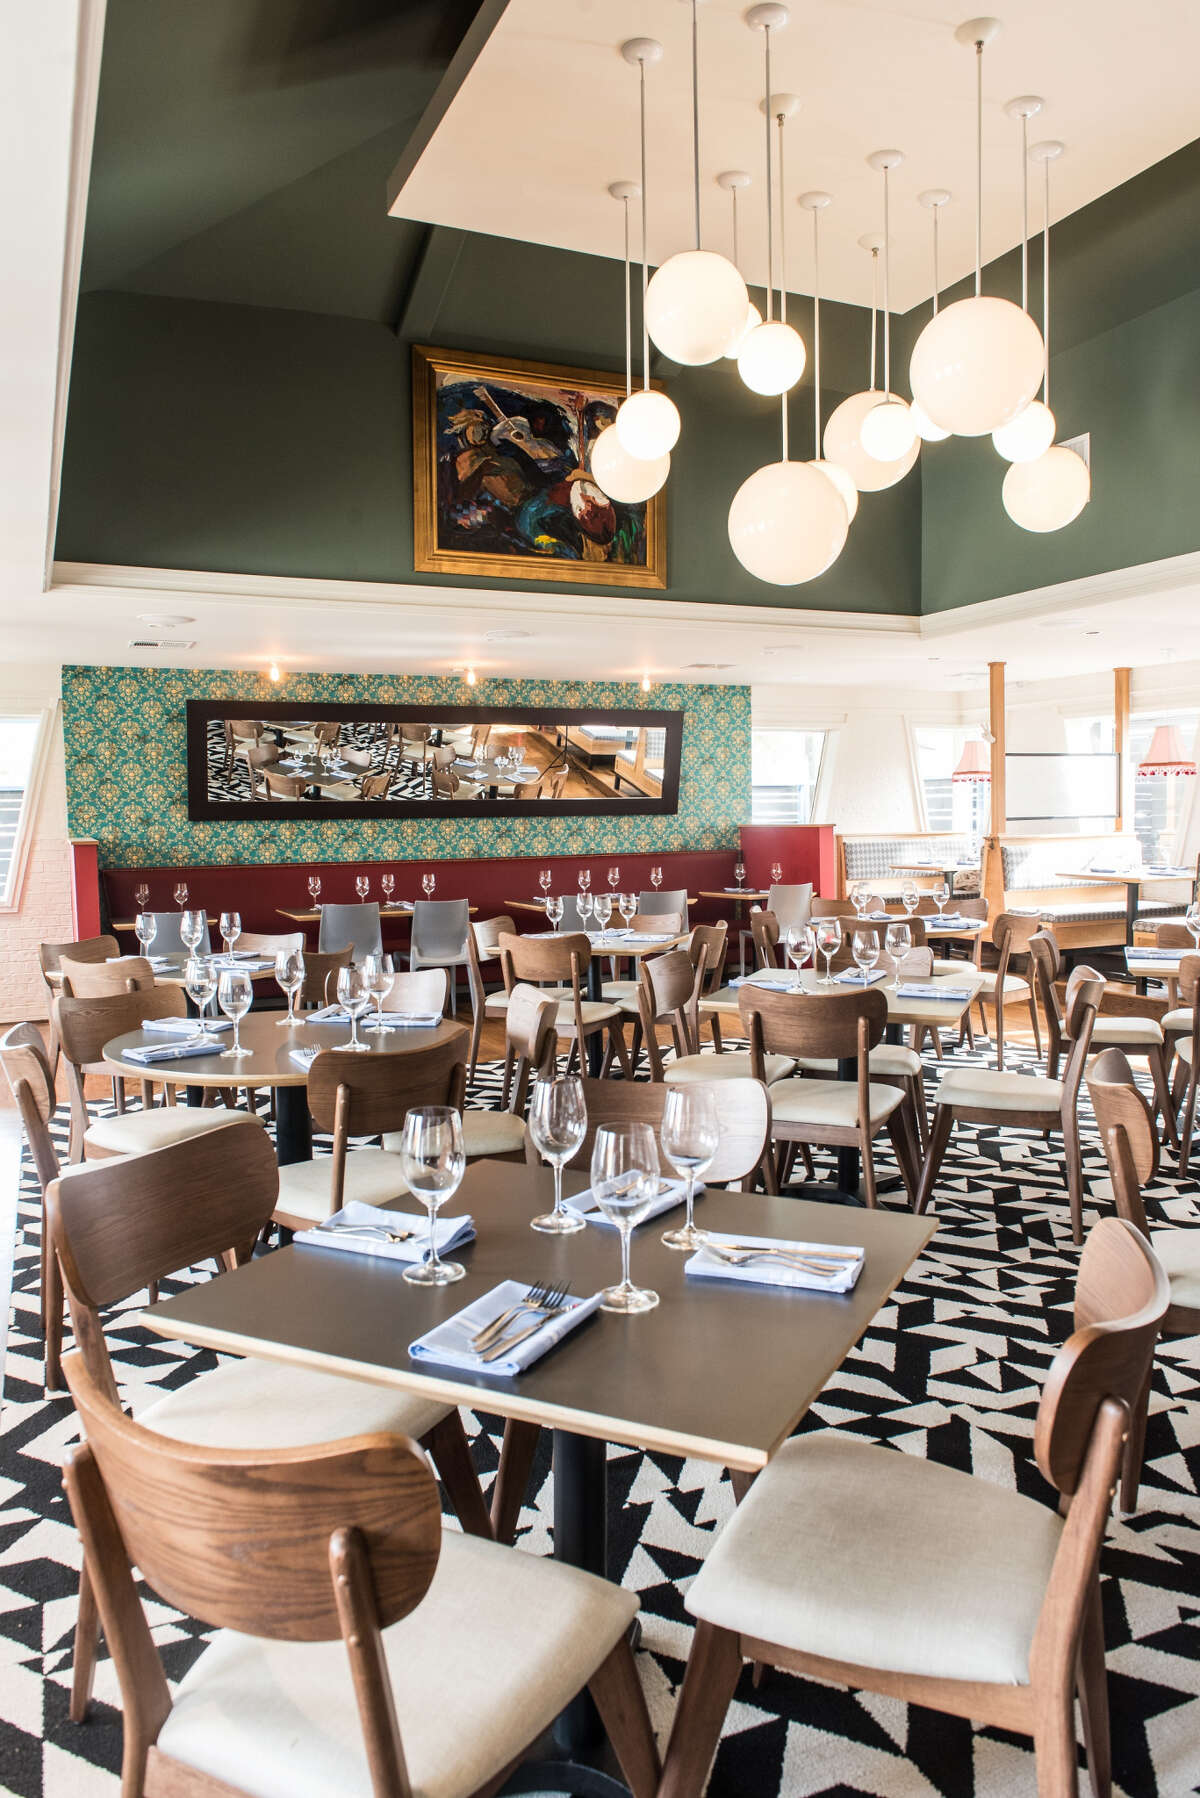 La Vista 101 restaurant opens May 29 at 1805 W. 18th St. It is restaurateur Greg Gordon's re-envisioning of his original La Vista restaurant in Briargrove which he closed in 2017.